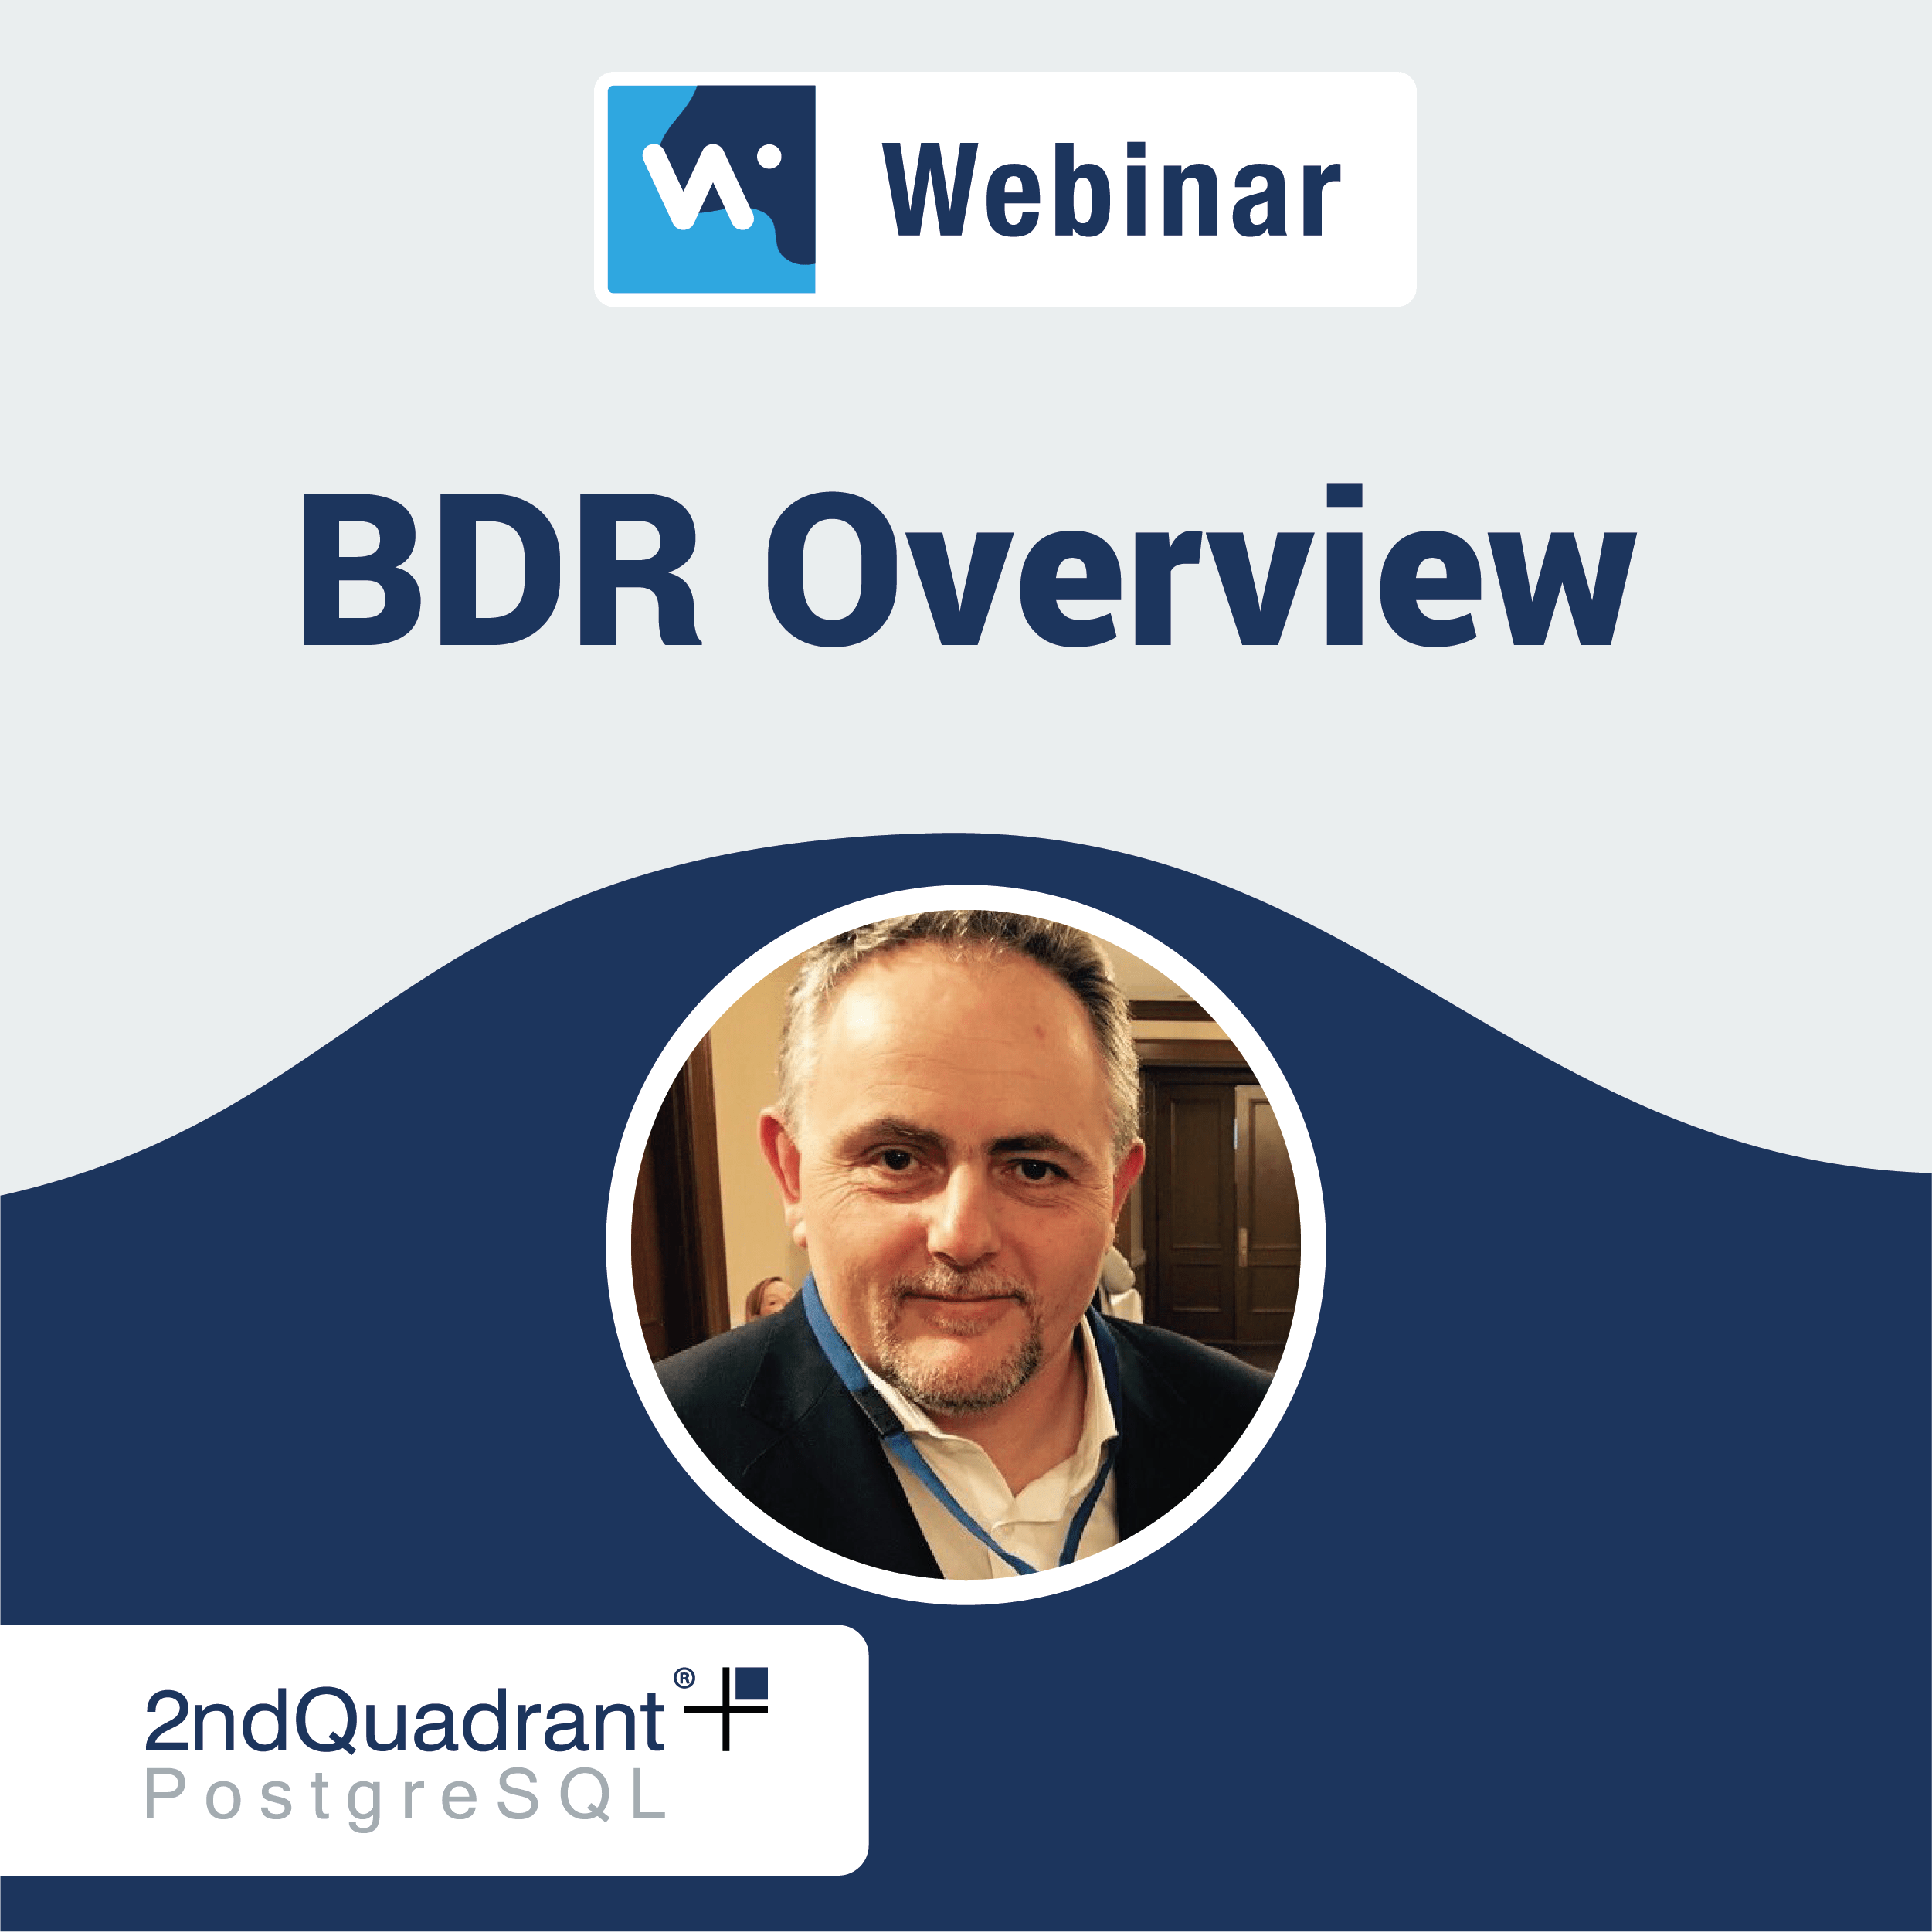 BDR Overview with Simon Riggs